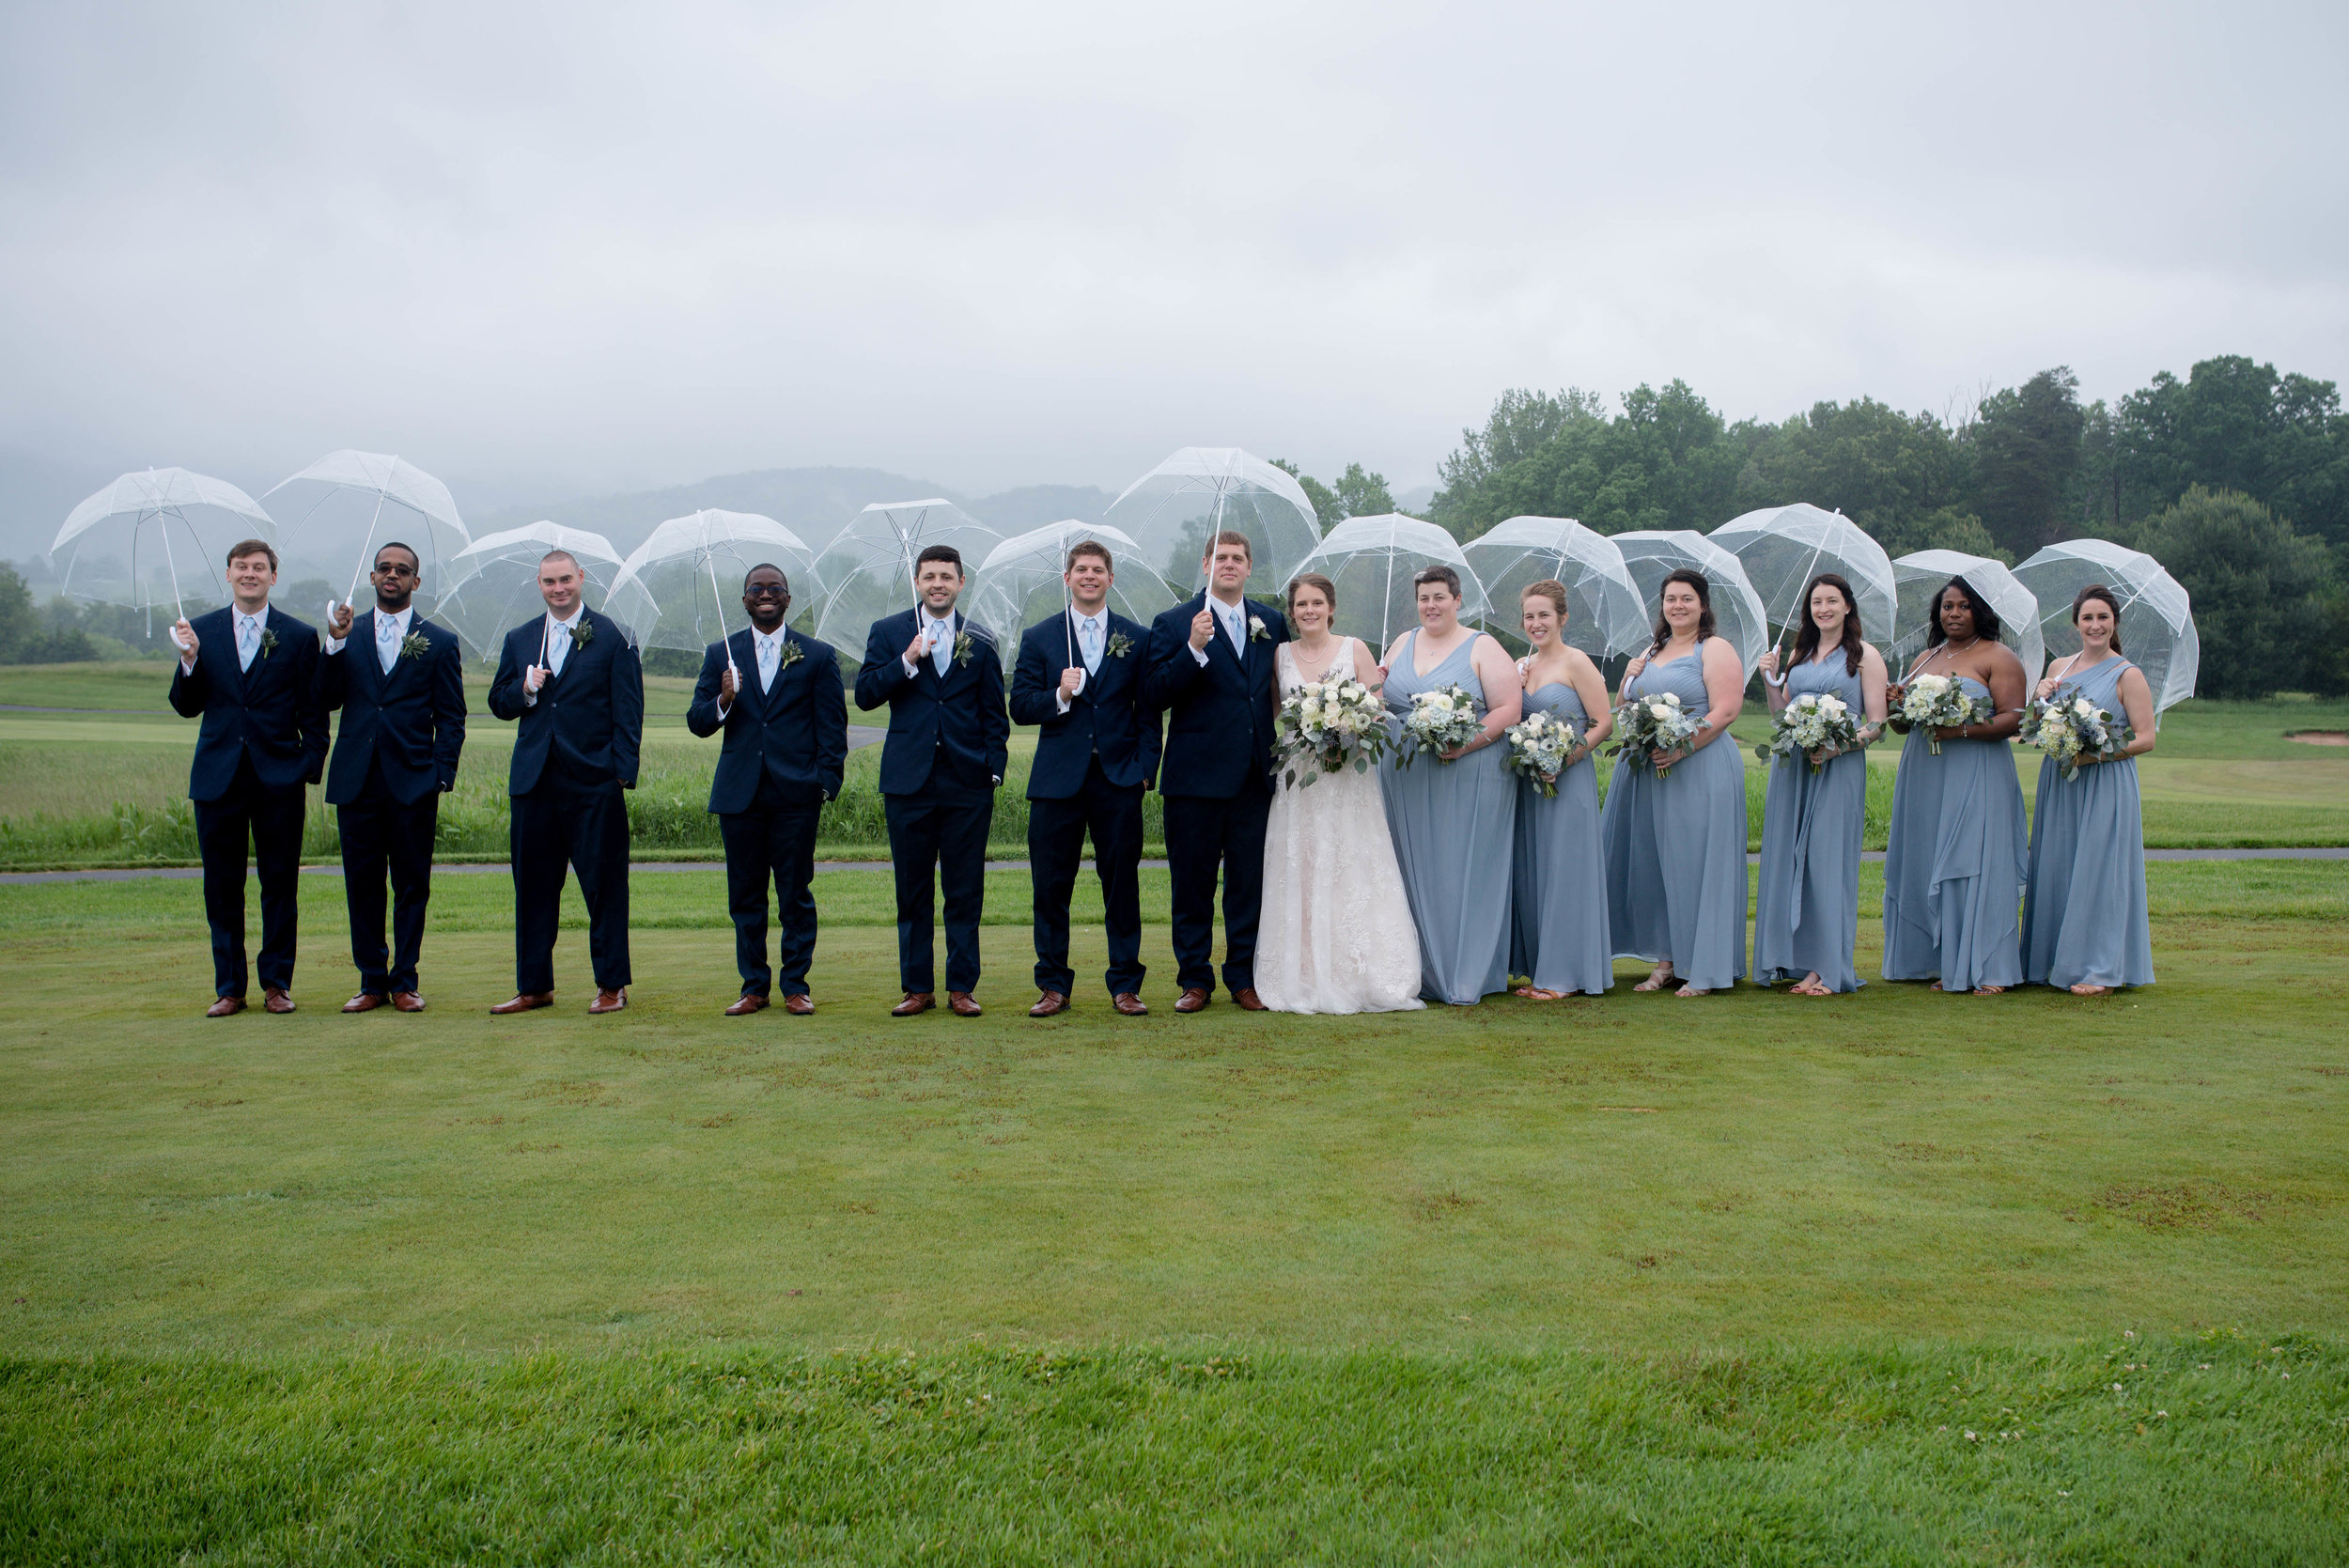 blue-ridge-wedding-ashley-nicole-photography-restoration-hall-crozetphotography-restorationhall-charlottesville-wedding_Bridalparty-1.jpg